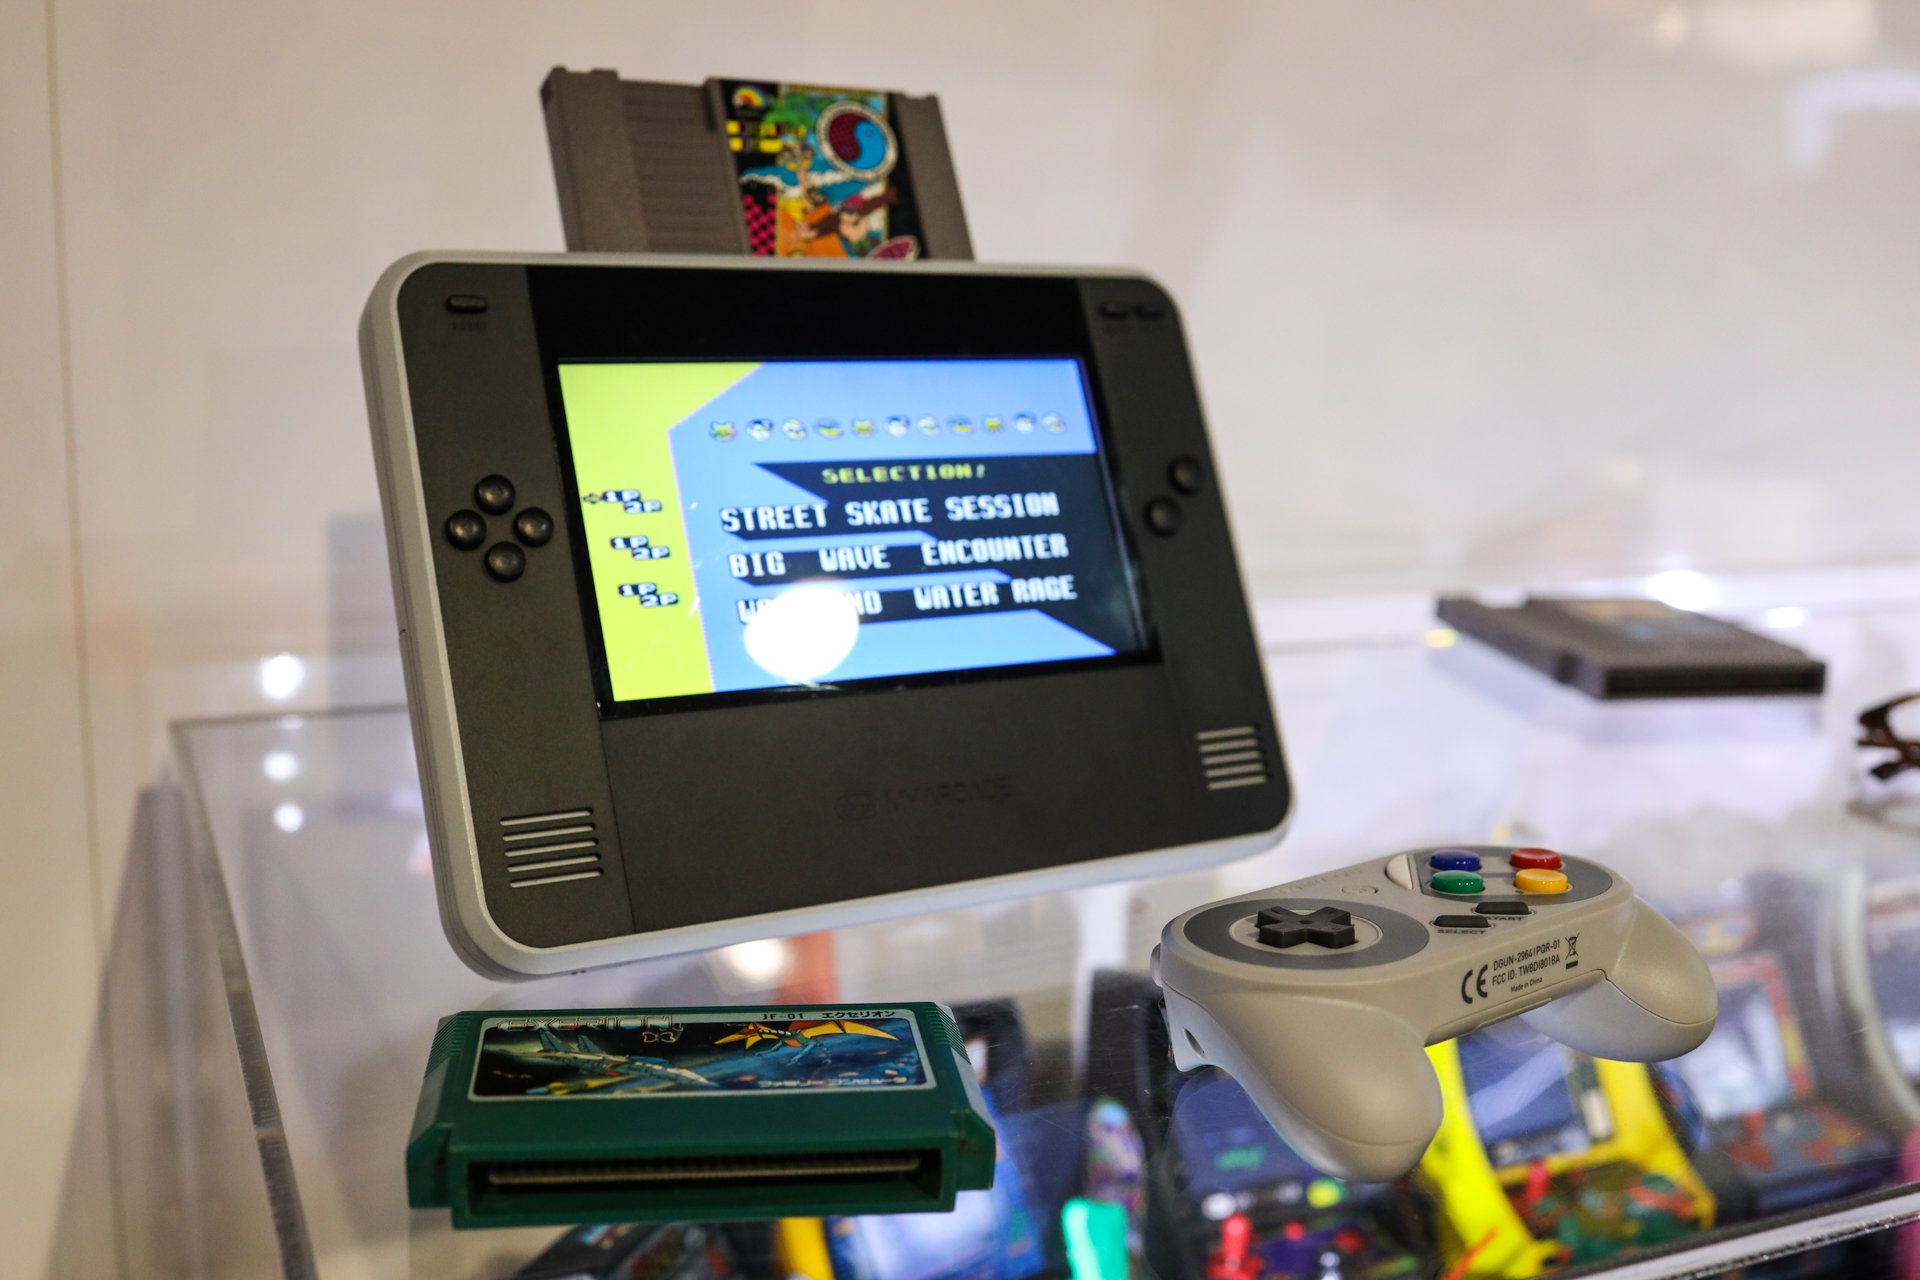 This extra-large handheld Nintendo works (and feels) like the real